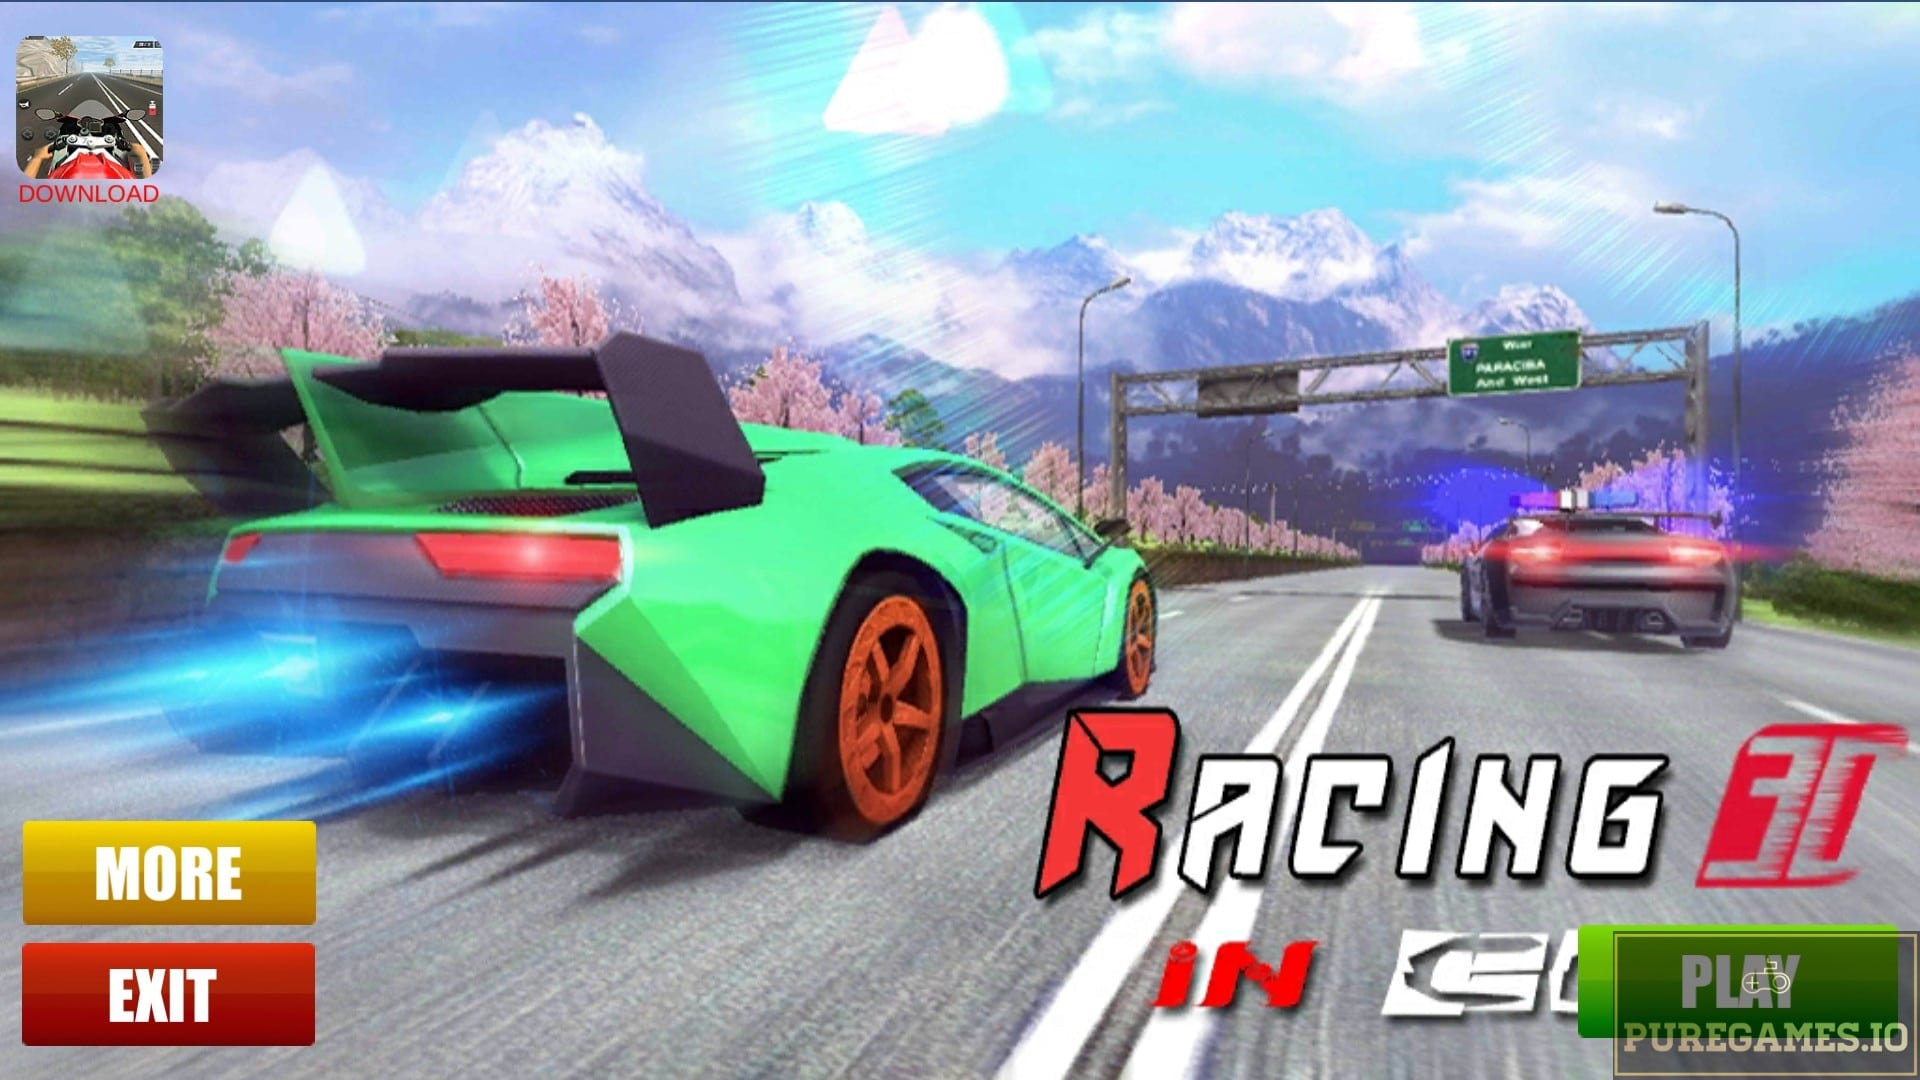 Download Racing In Car 3D APK - For Android 3